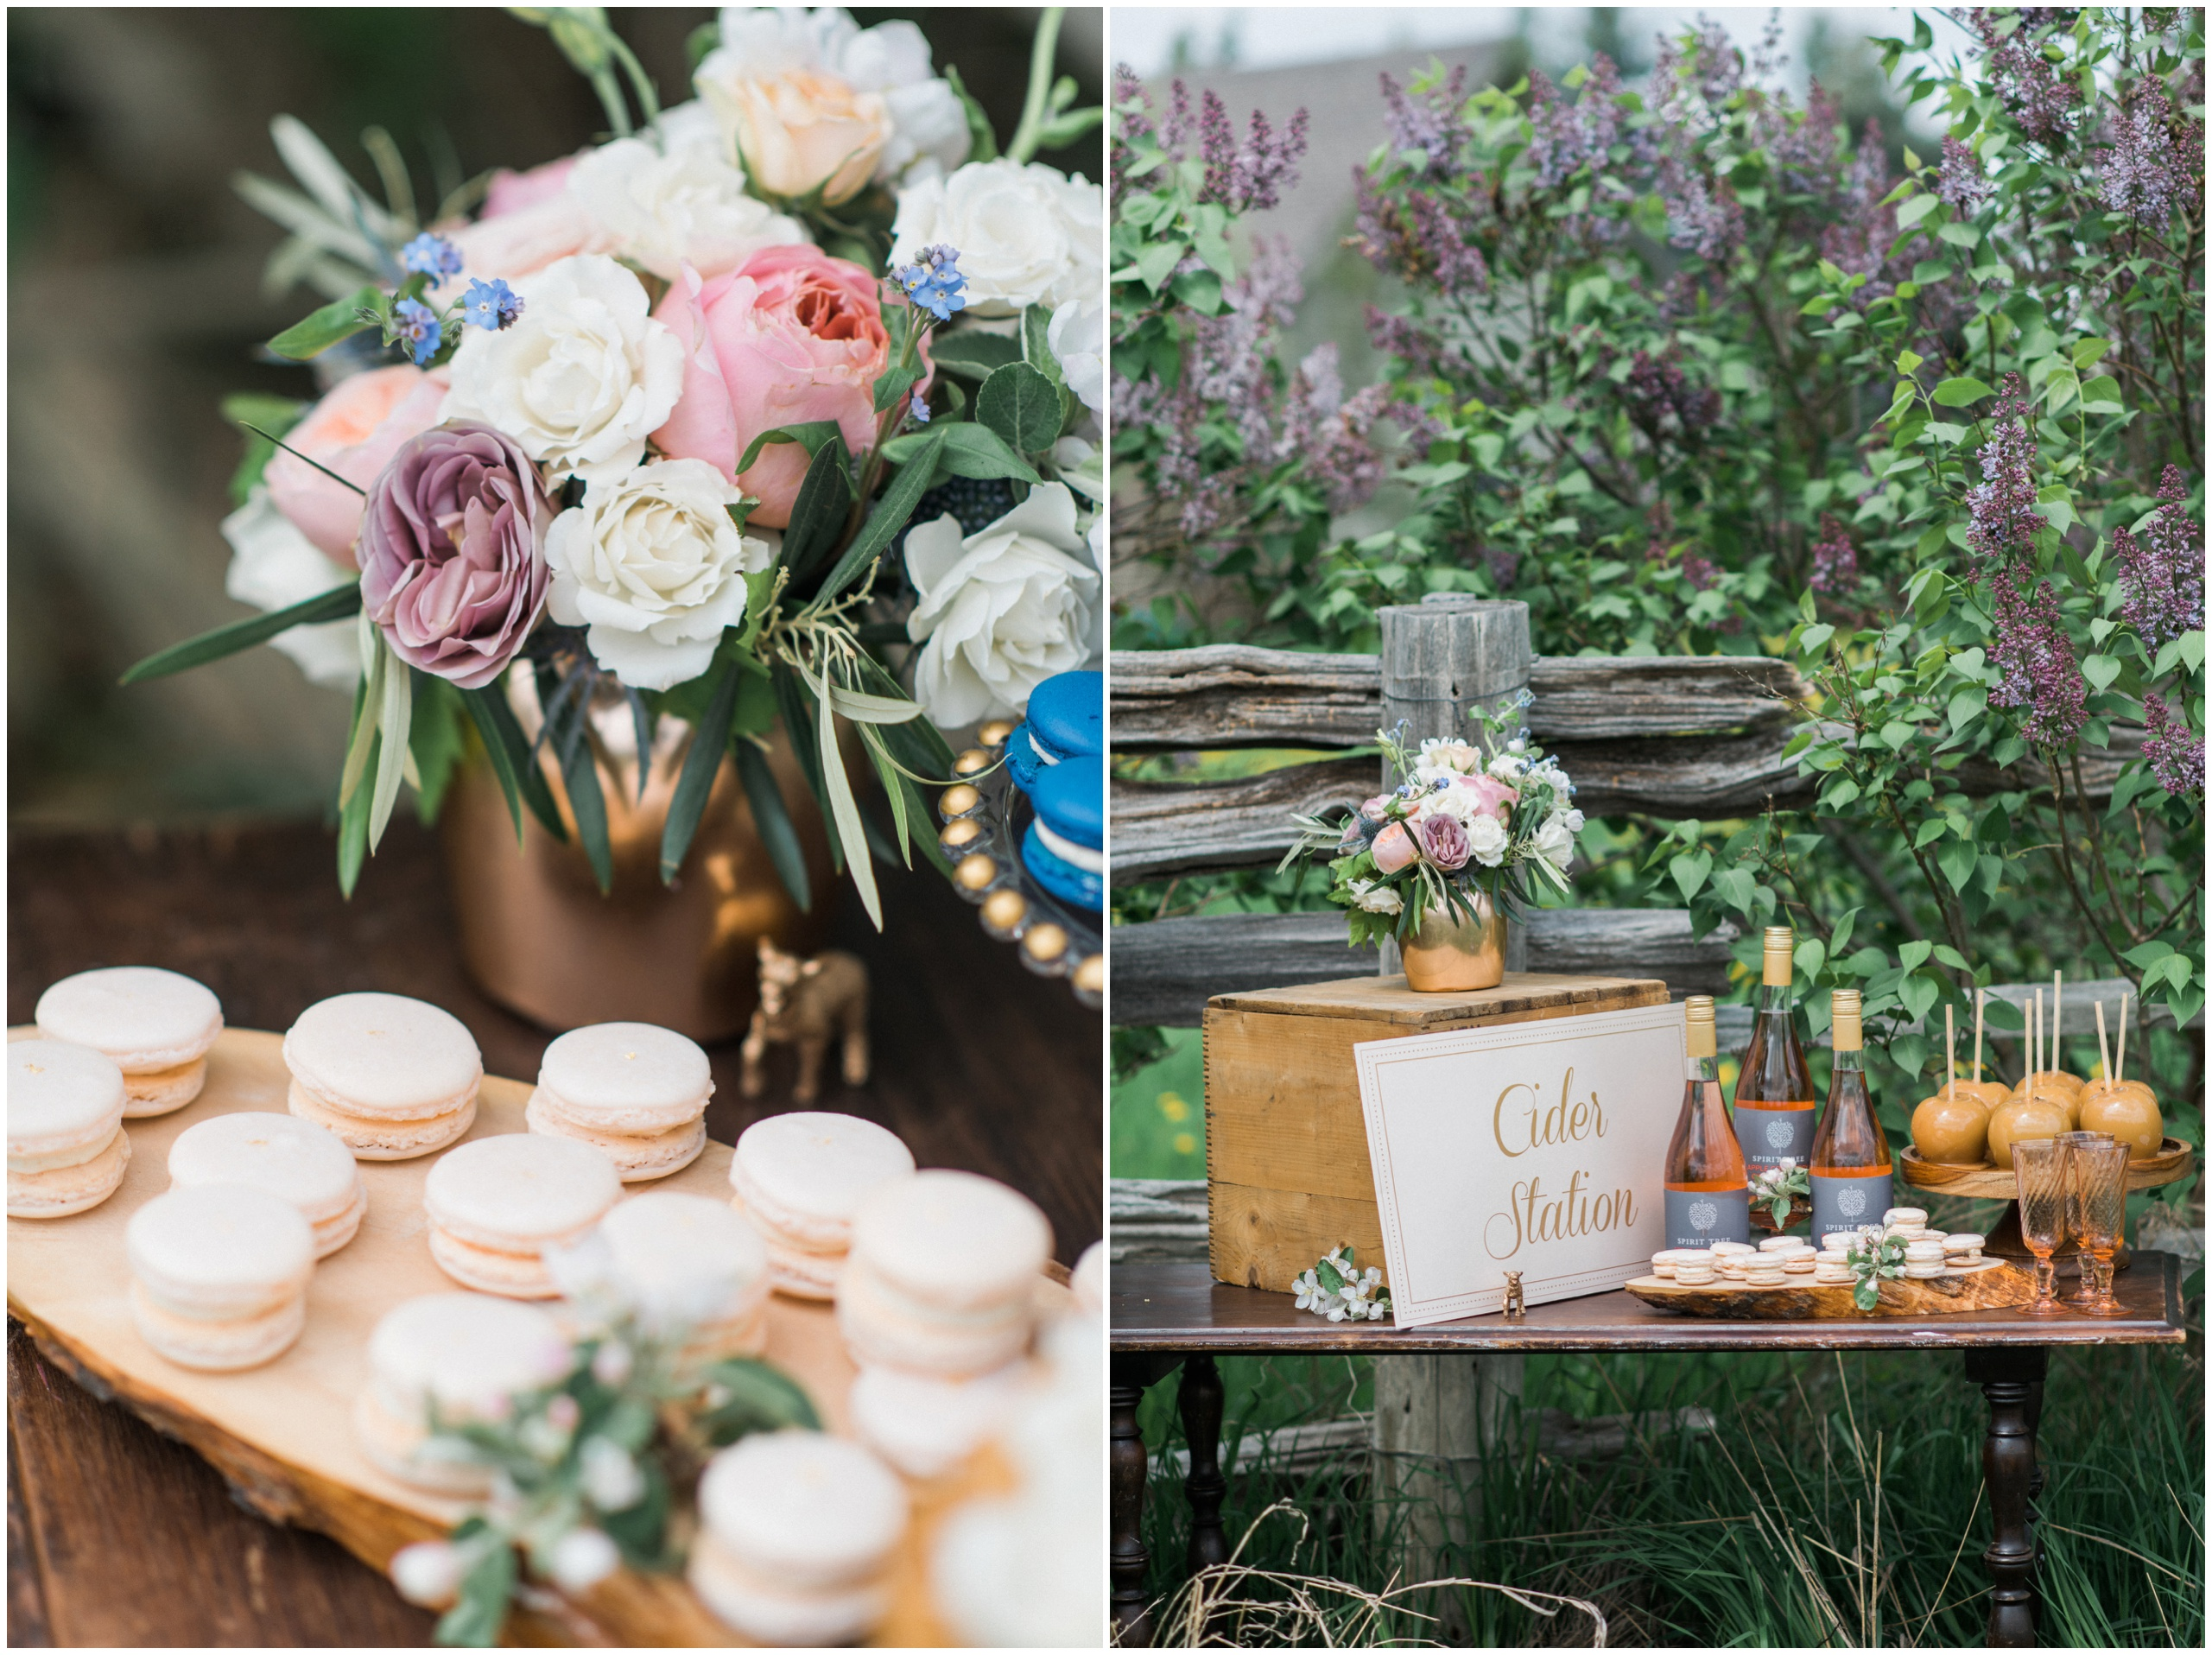 Wedding Inspiration: Cider station wedding table with caramel apples, blush pink macarons and rustic wooden crate.